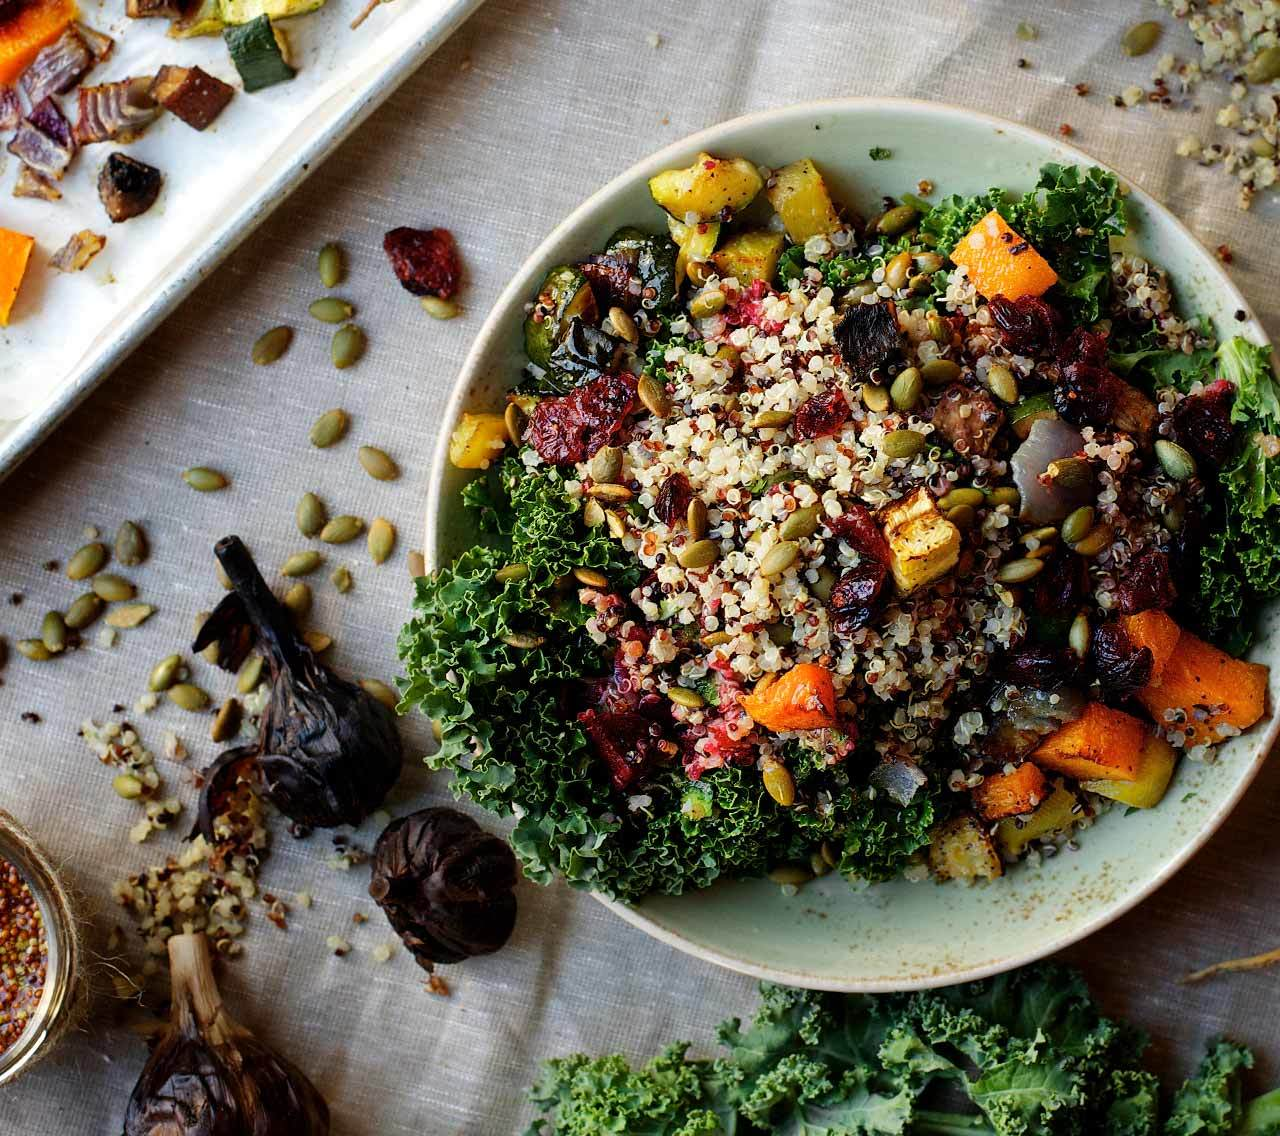 Hearty Roasted Vegetable and Kefir Lime Quinoa Salad with Black Garlic Vinaigrette